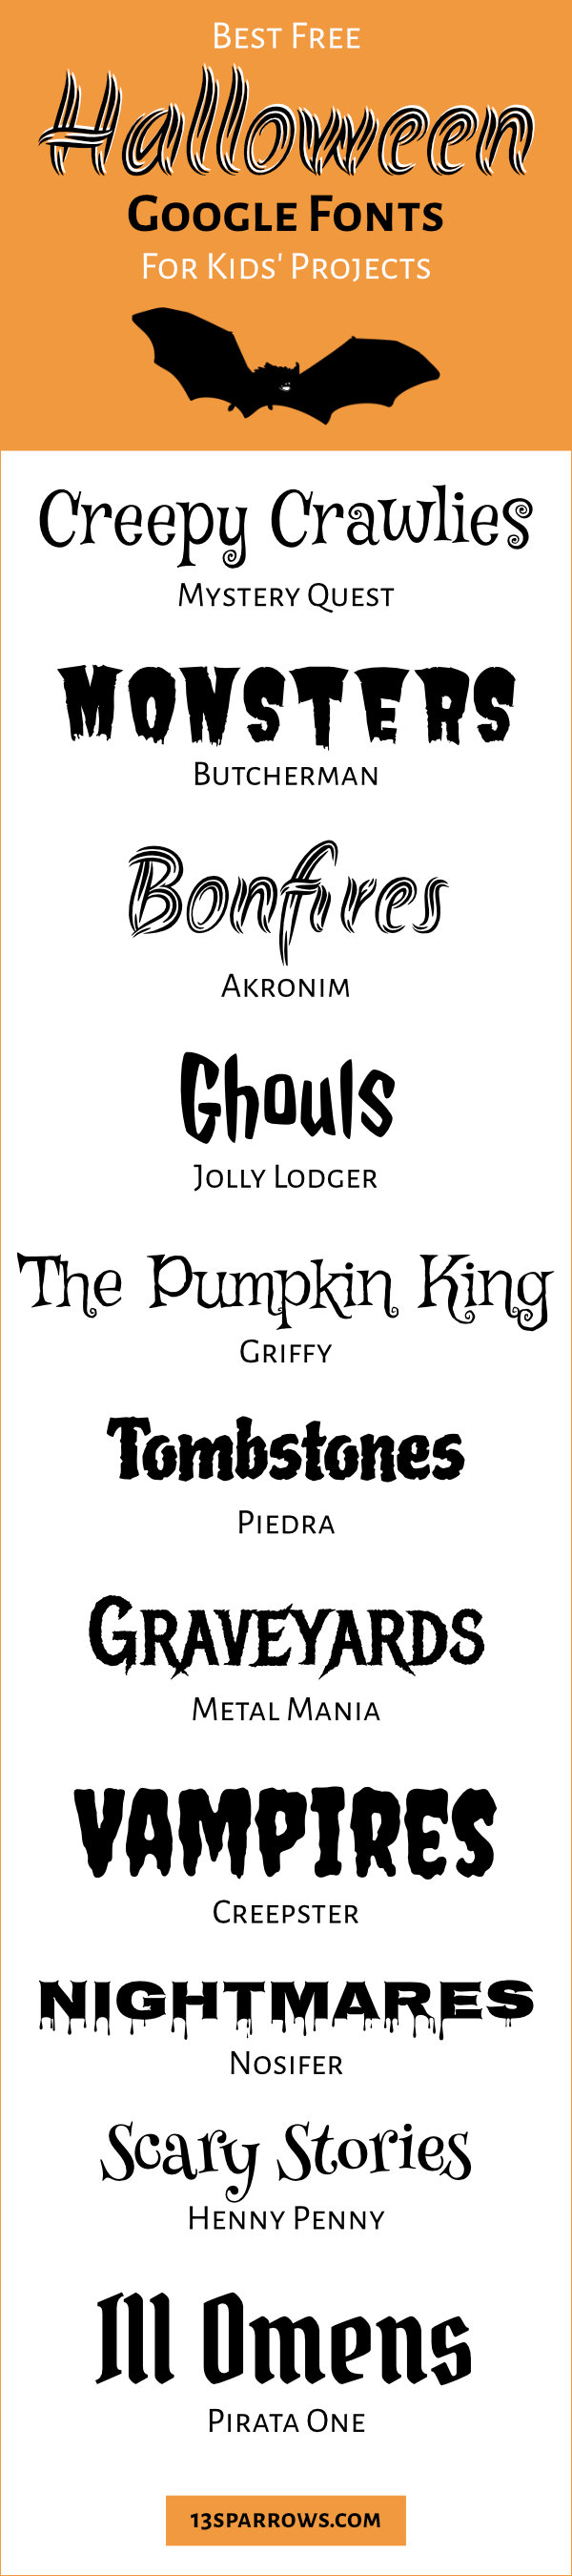 Free Halloween google fonts   13sparrows If you are making spooky resources for kids, I've found some great free fonts!